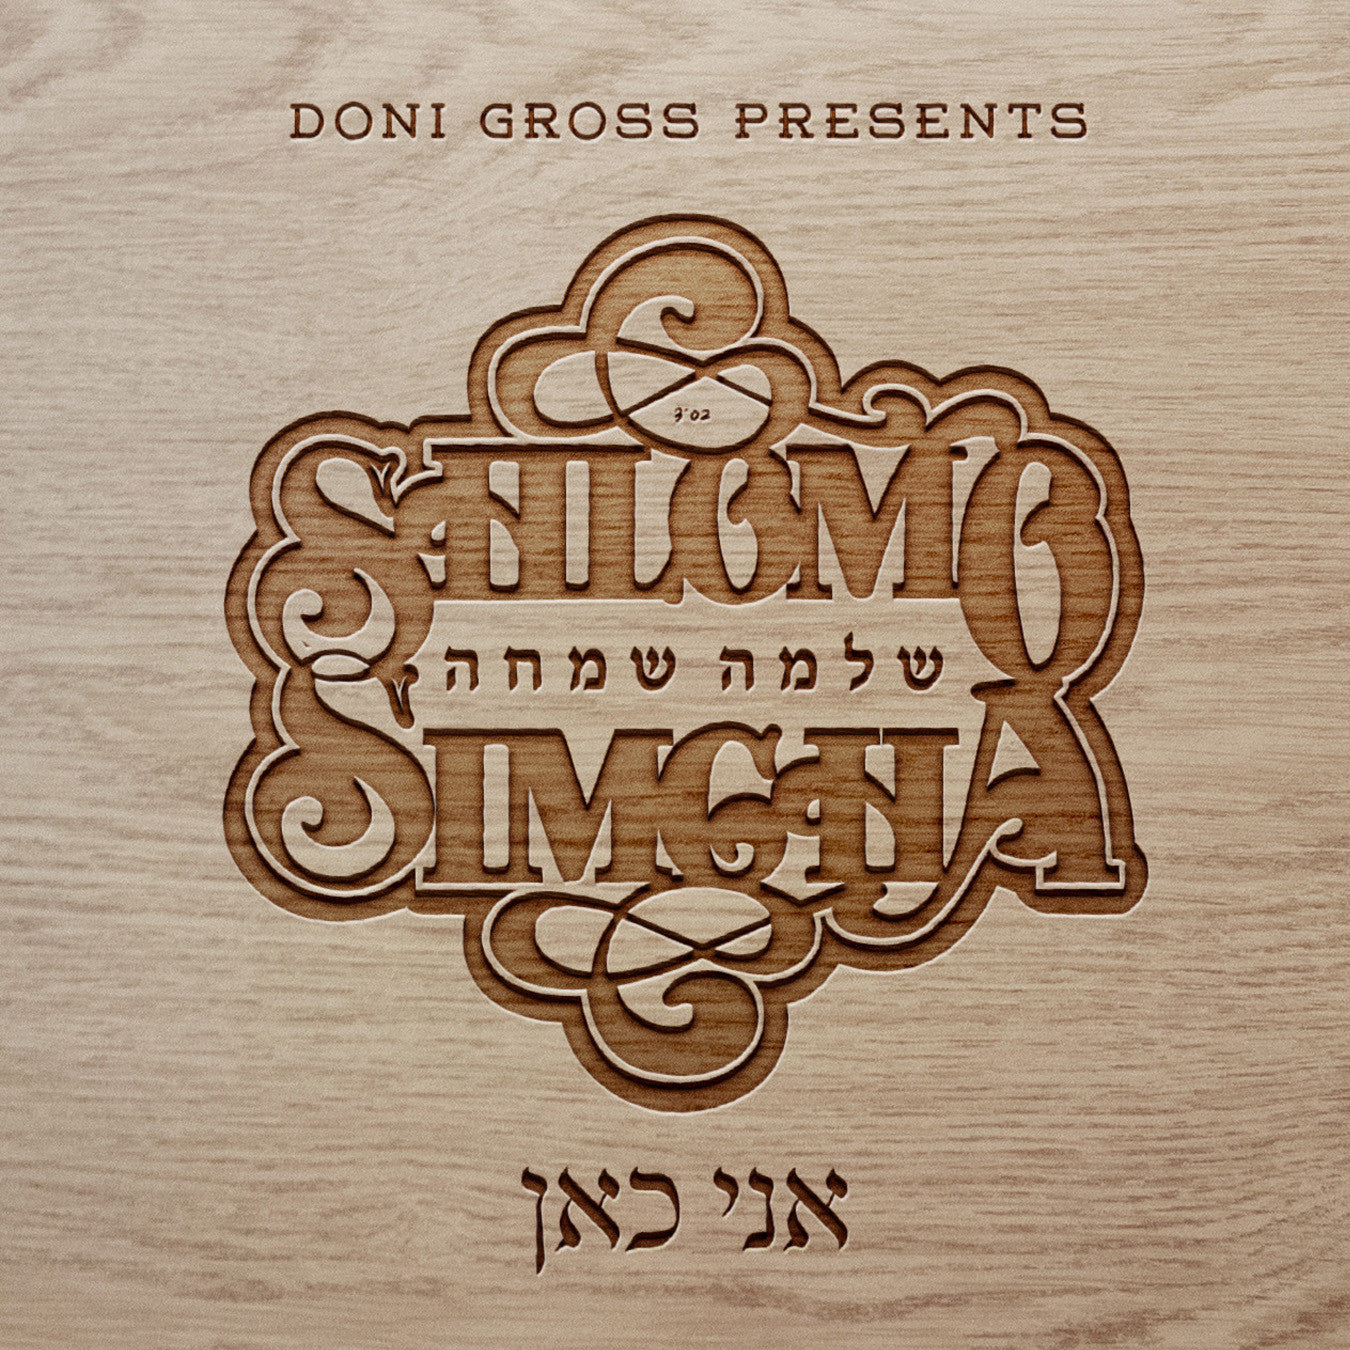 Shlomo Simcha - Ani Kan